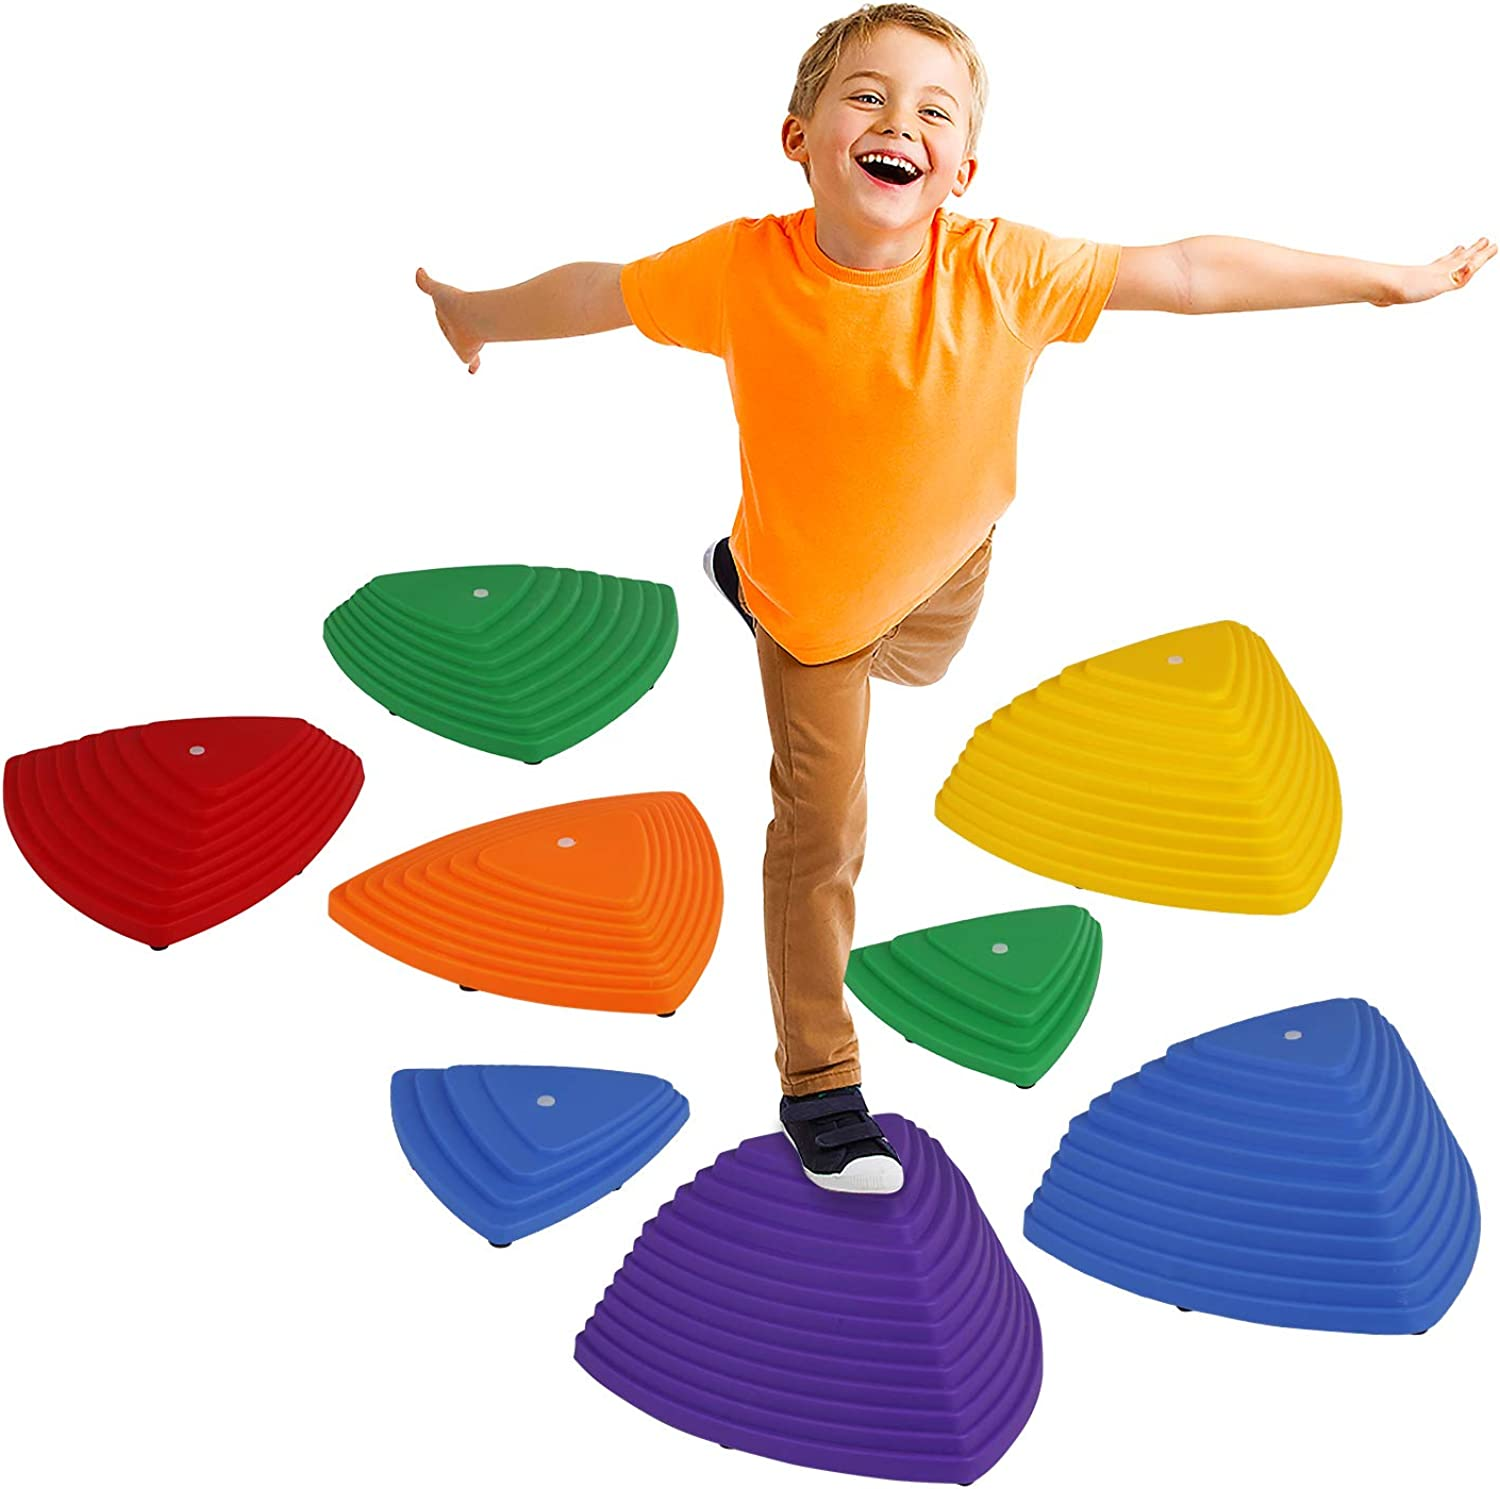 Little Dynamo   Balance Stepping Stones for Kids   Set of 8 Hilltop and Riverstones (4 Sizes  XL L M S) with Grip Upgrade   Montessori and Gross Motor Skills Toys for Toddlers   Gymnastics for Kids